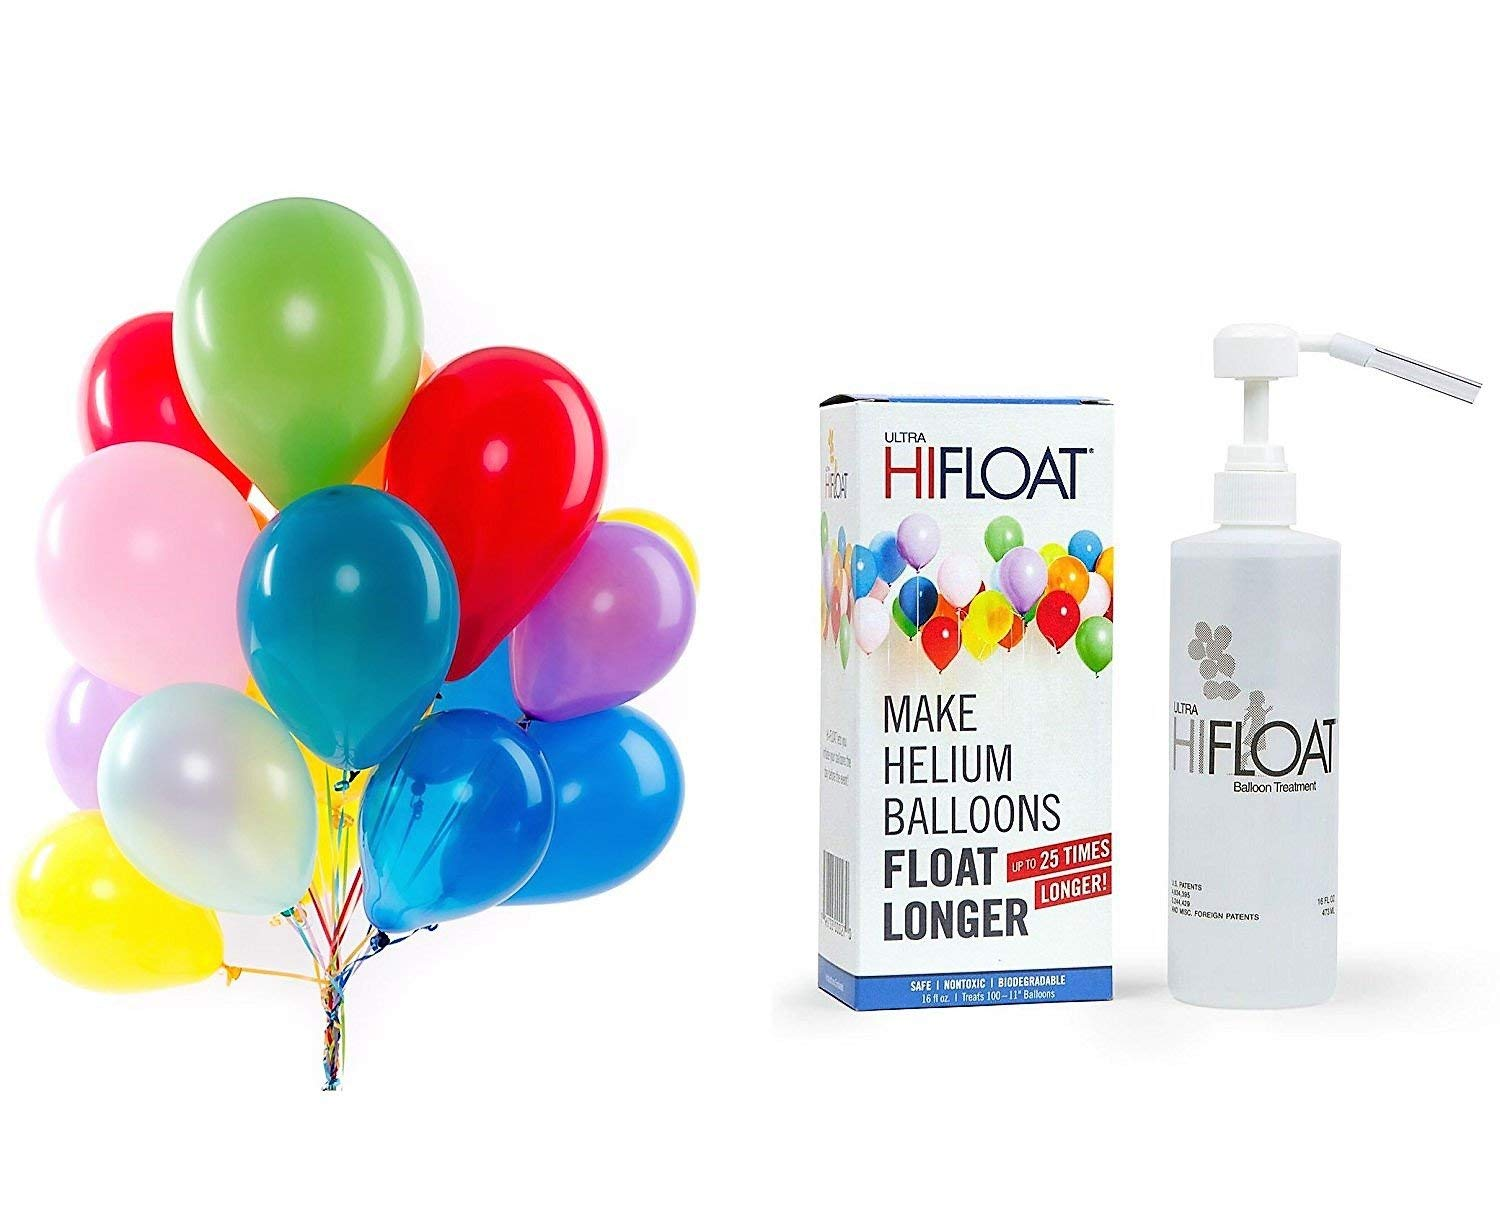 efe554a8f26 Get Quotations · Hi-Float Balloon Treatment 16 oz and 144 Pcs Party Balloons  Together (Assorted Colors